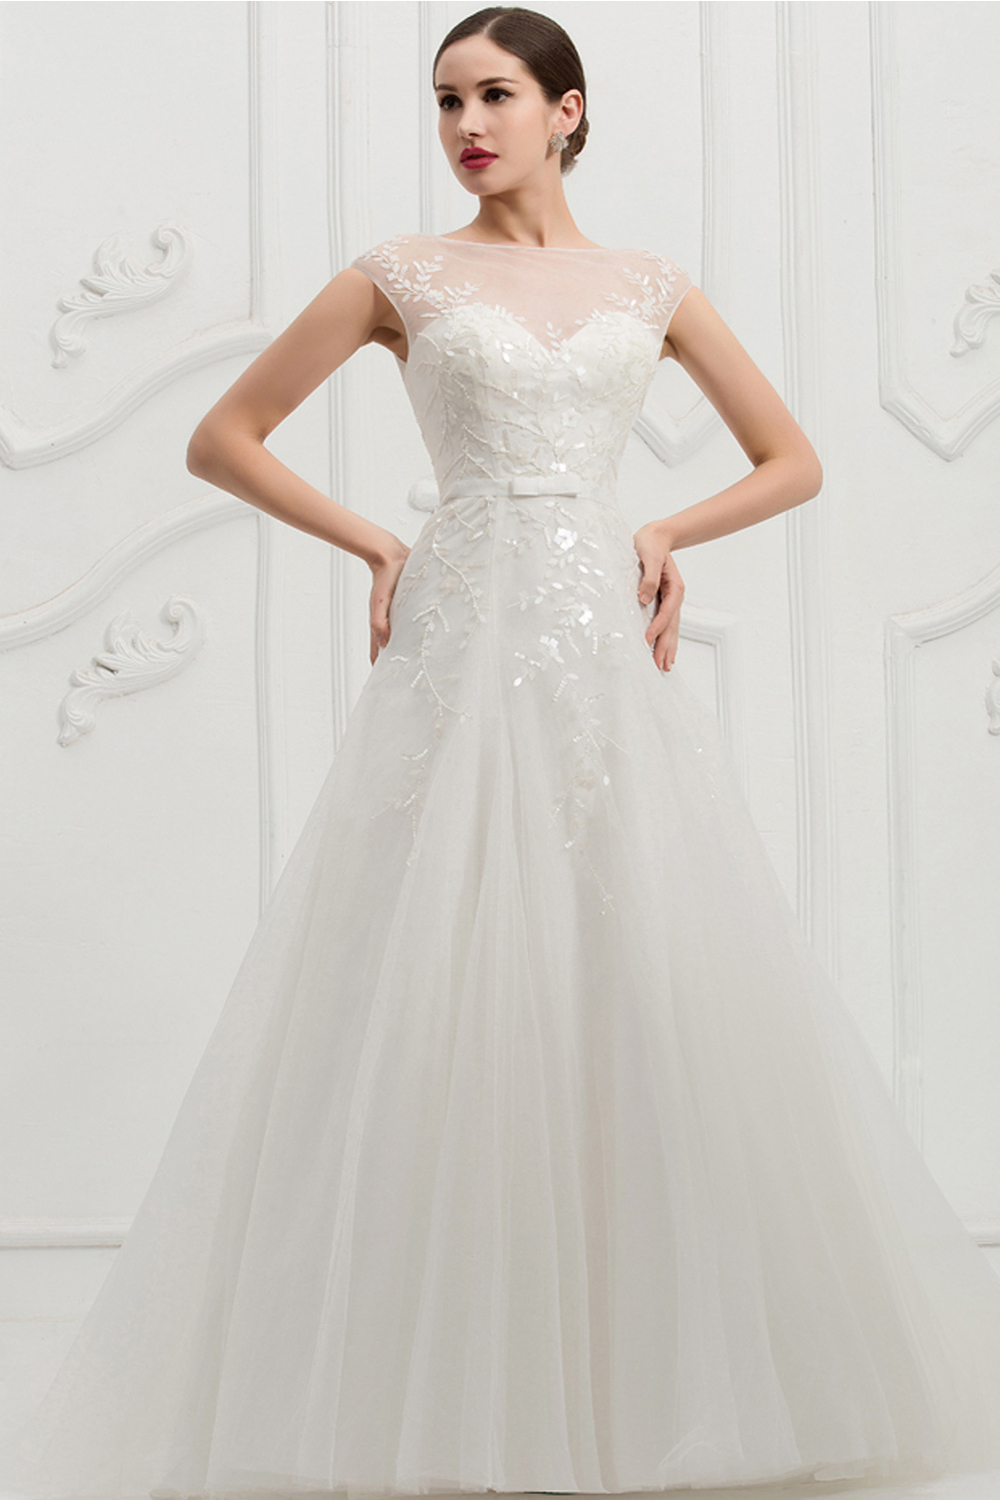 A-Line/Princess Strapless Sweep Train Tulle Wedding Dress with Embellishment